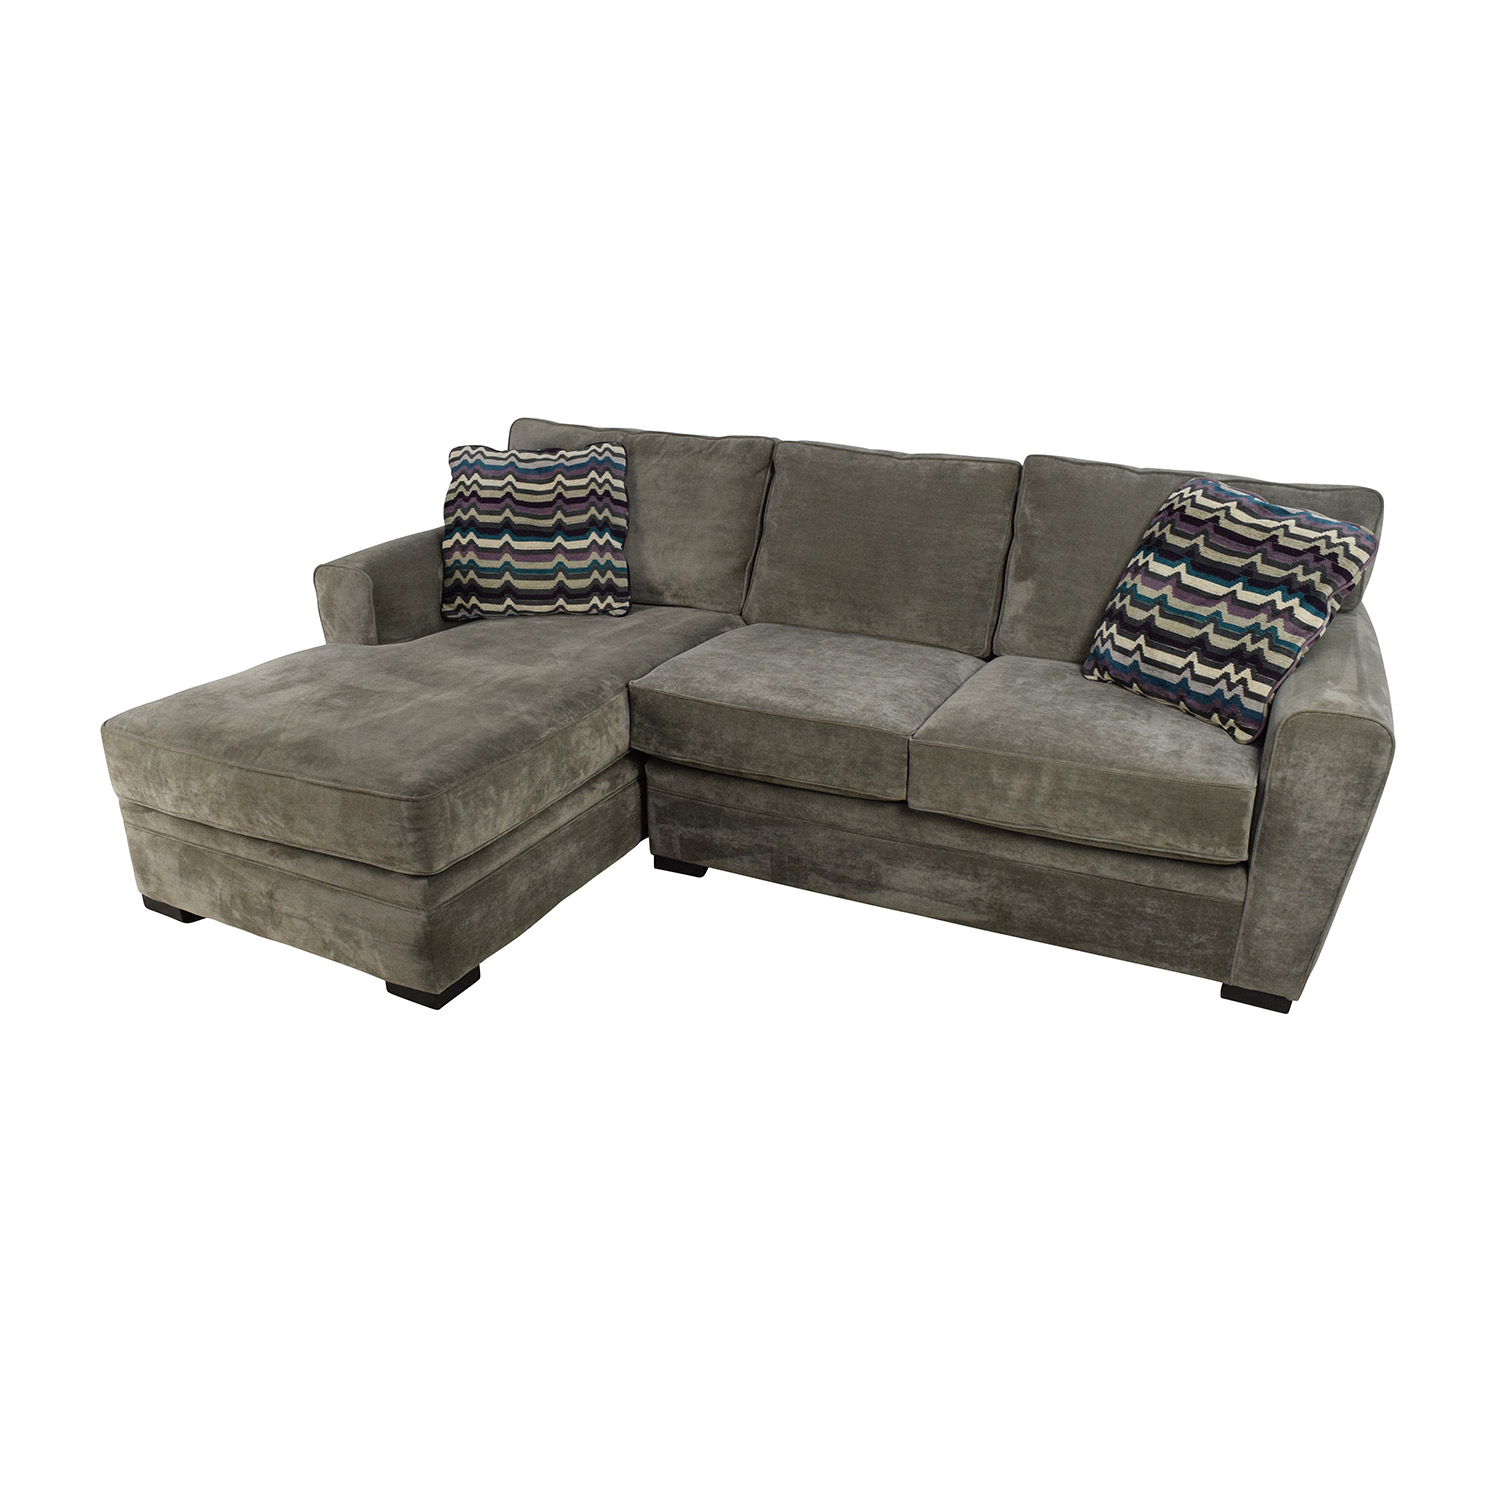 raymour and flanigan sofa bed